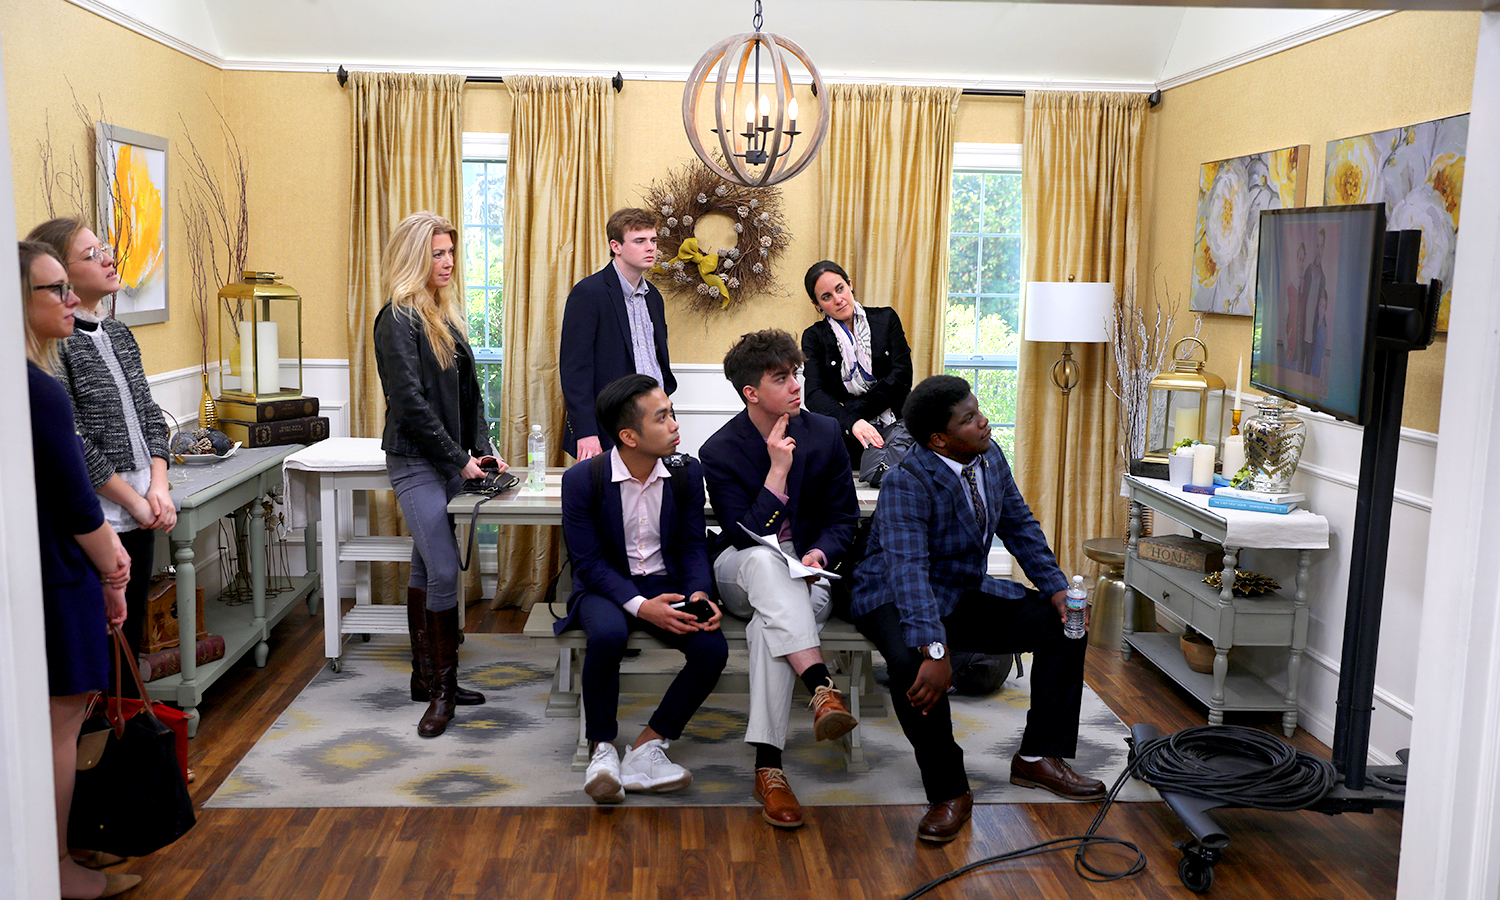 Students watch filming of Hallmark's Home & Family on set.